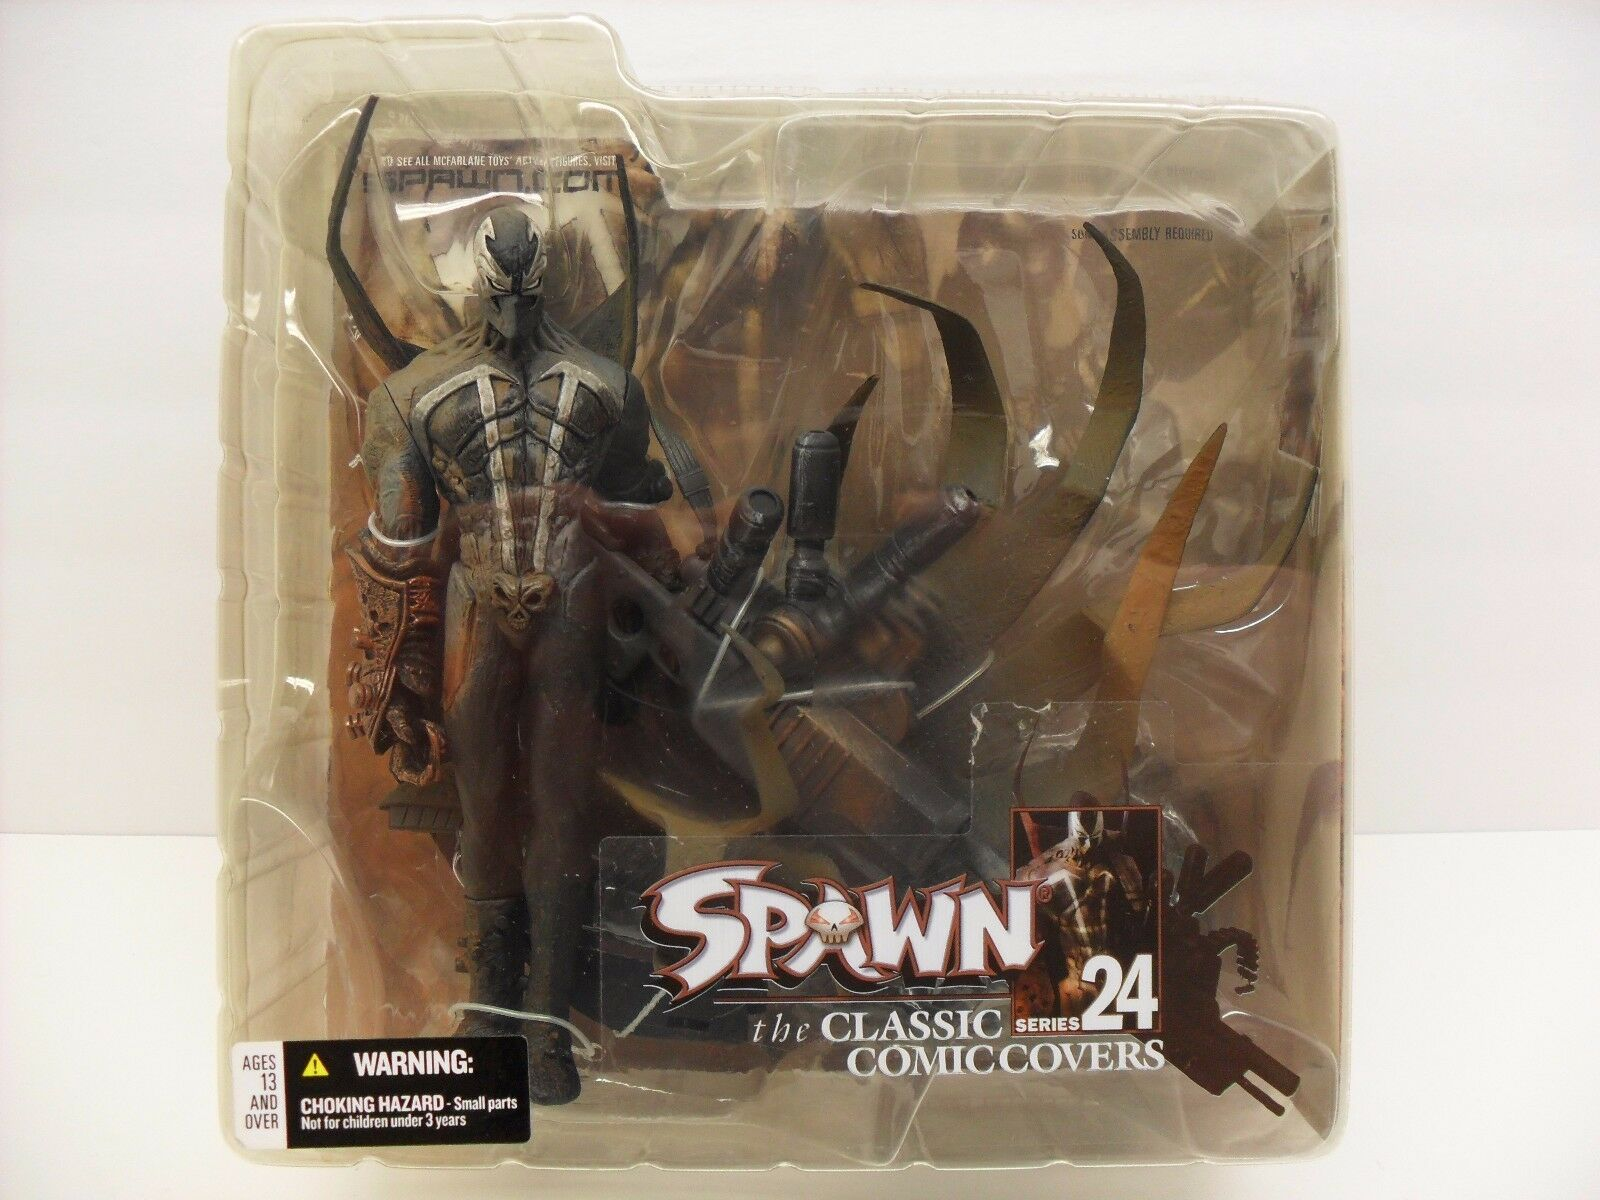 2003 McFarlane Toys Spawn Series 24 Hellspawn hsi.1 Classic Comic Covers Figure